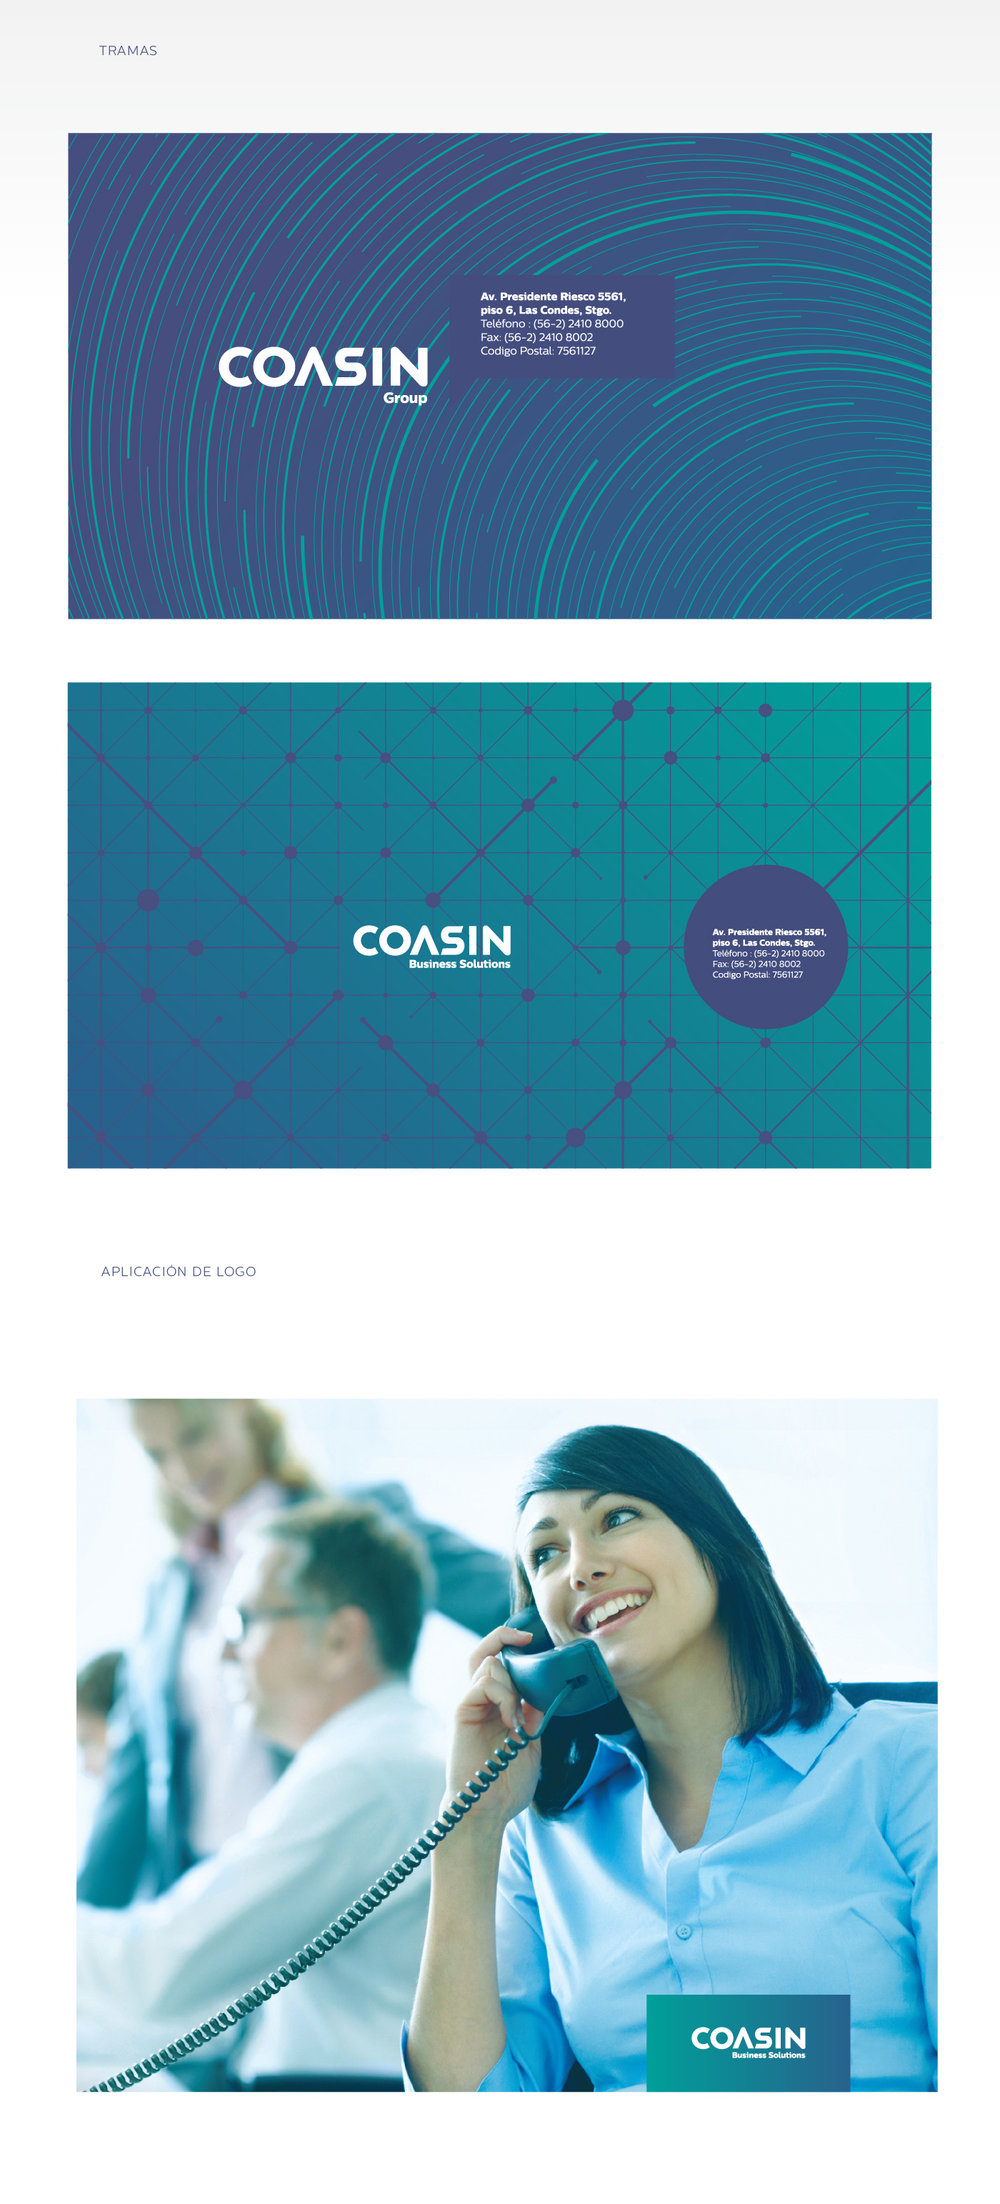 coasin_rebrand-03.jpg